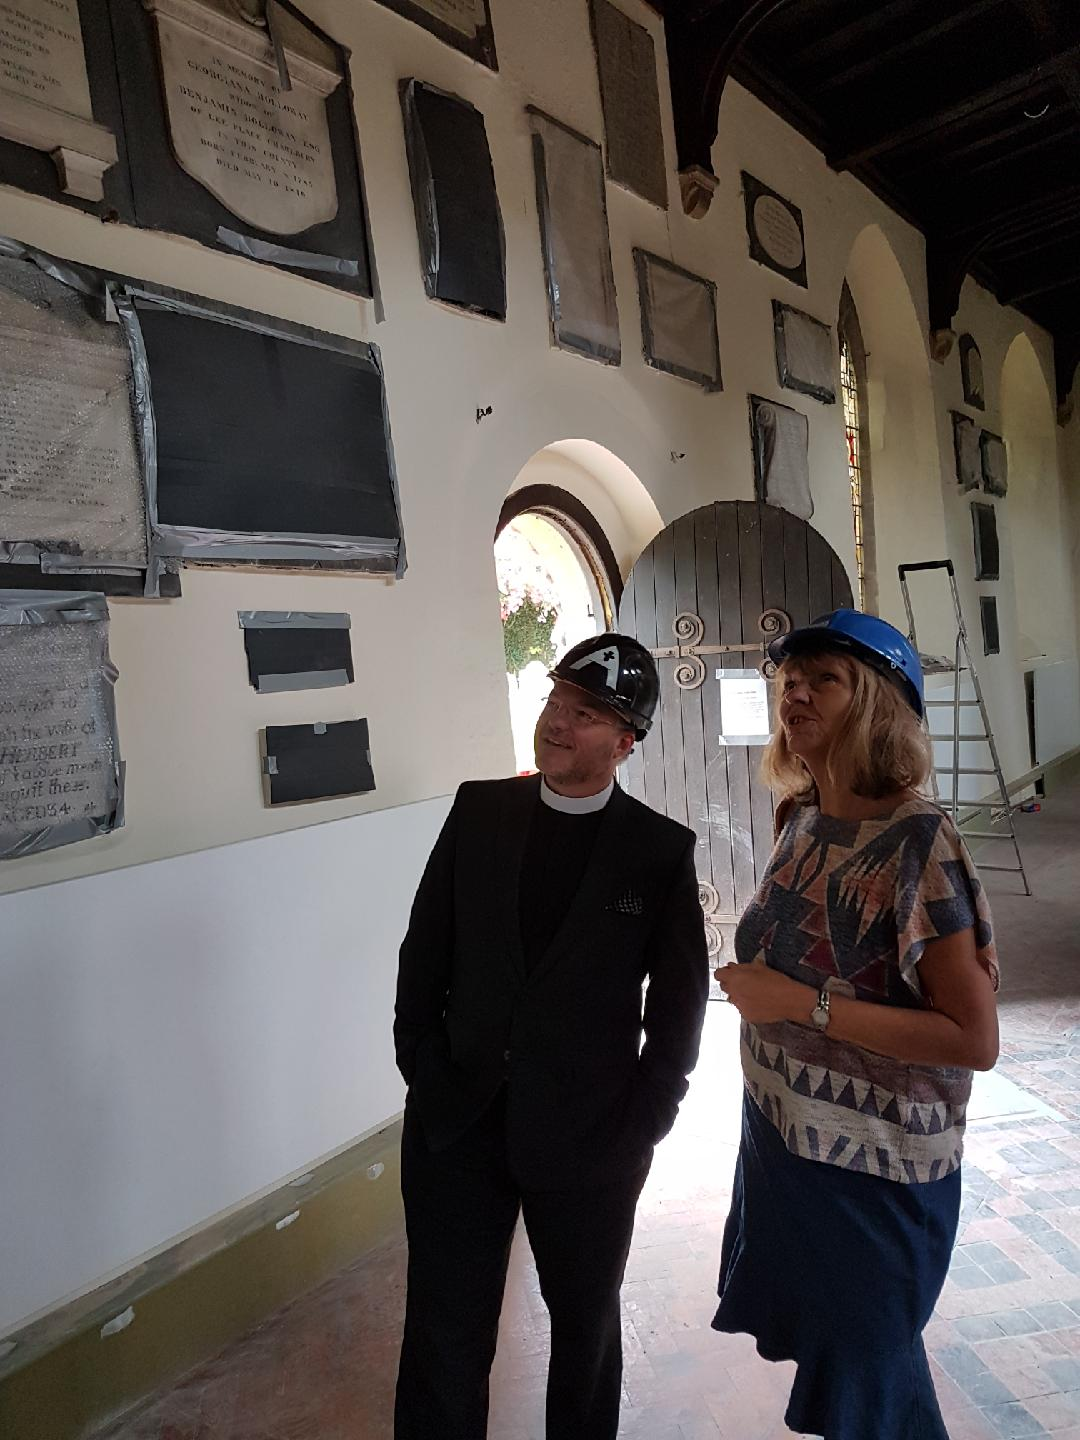 Adrian with the Mayor of Woodstock, Cllr Trish Redpath. (Note new radiator as yet unpainted).